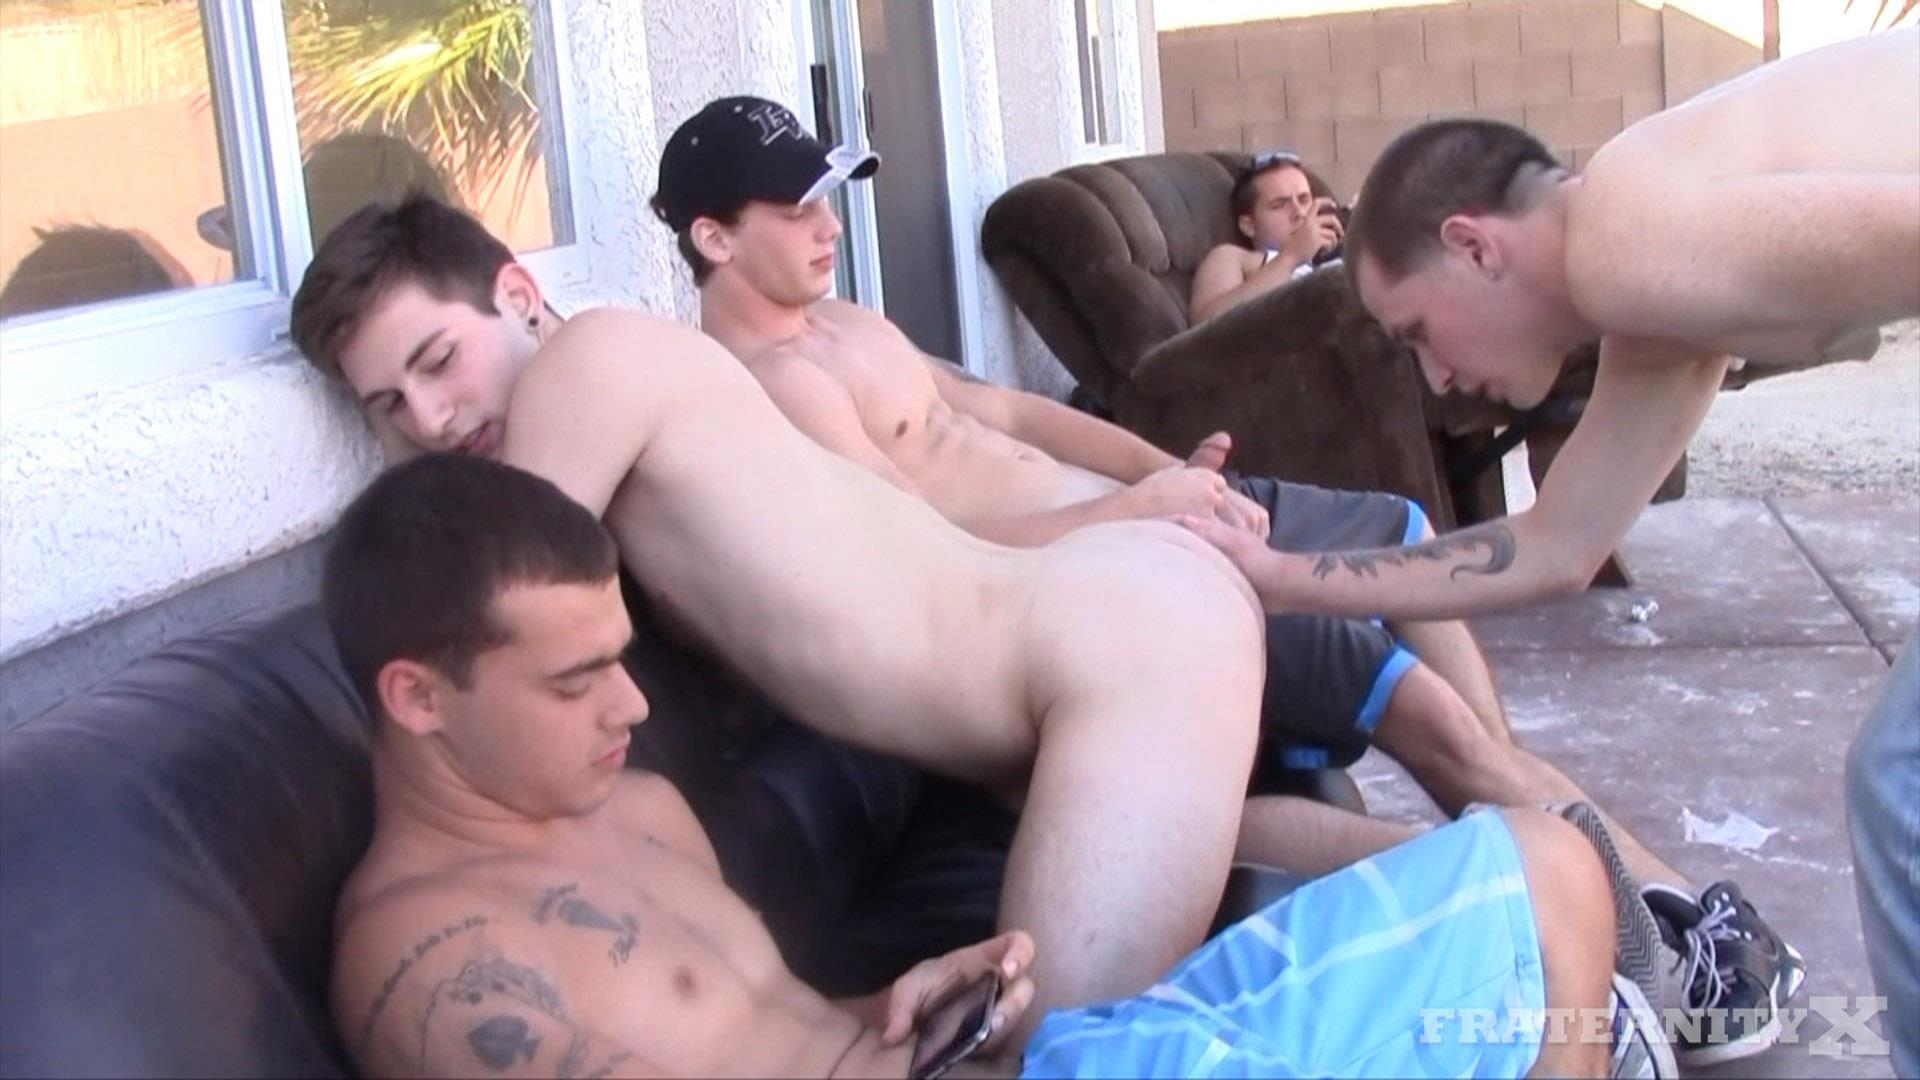 Fraternity-X-Frenchy-Naked-Frat-Guys-Barebacking-Outside-Big-Dicks-Amateur-Gay-Porn-05 Fraternity Boys Fucking Bareback Outside On The Frat Patio